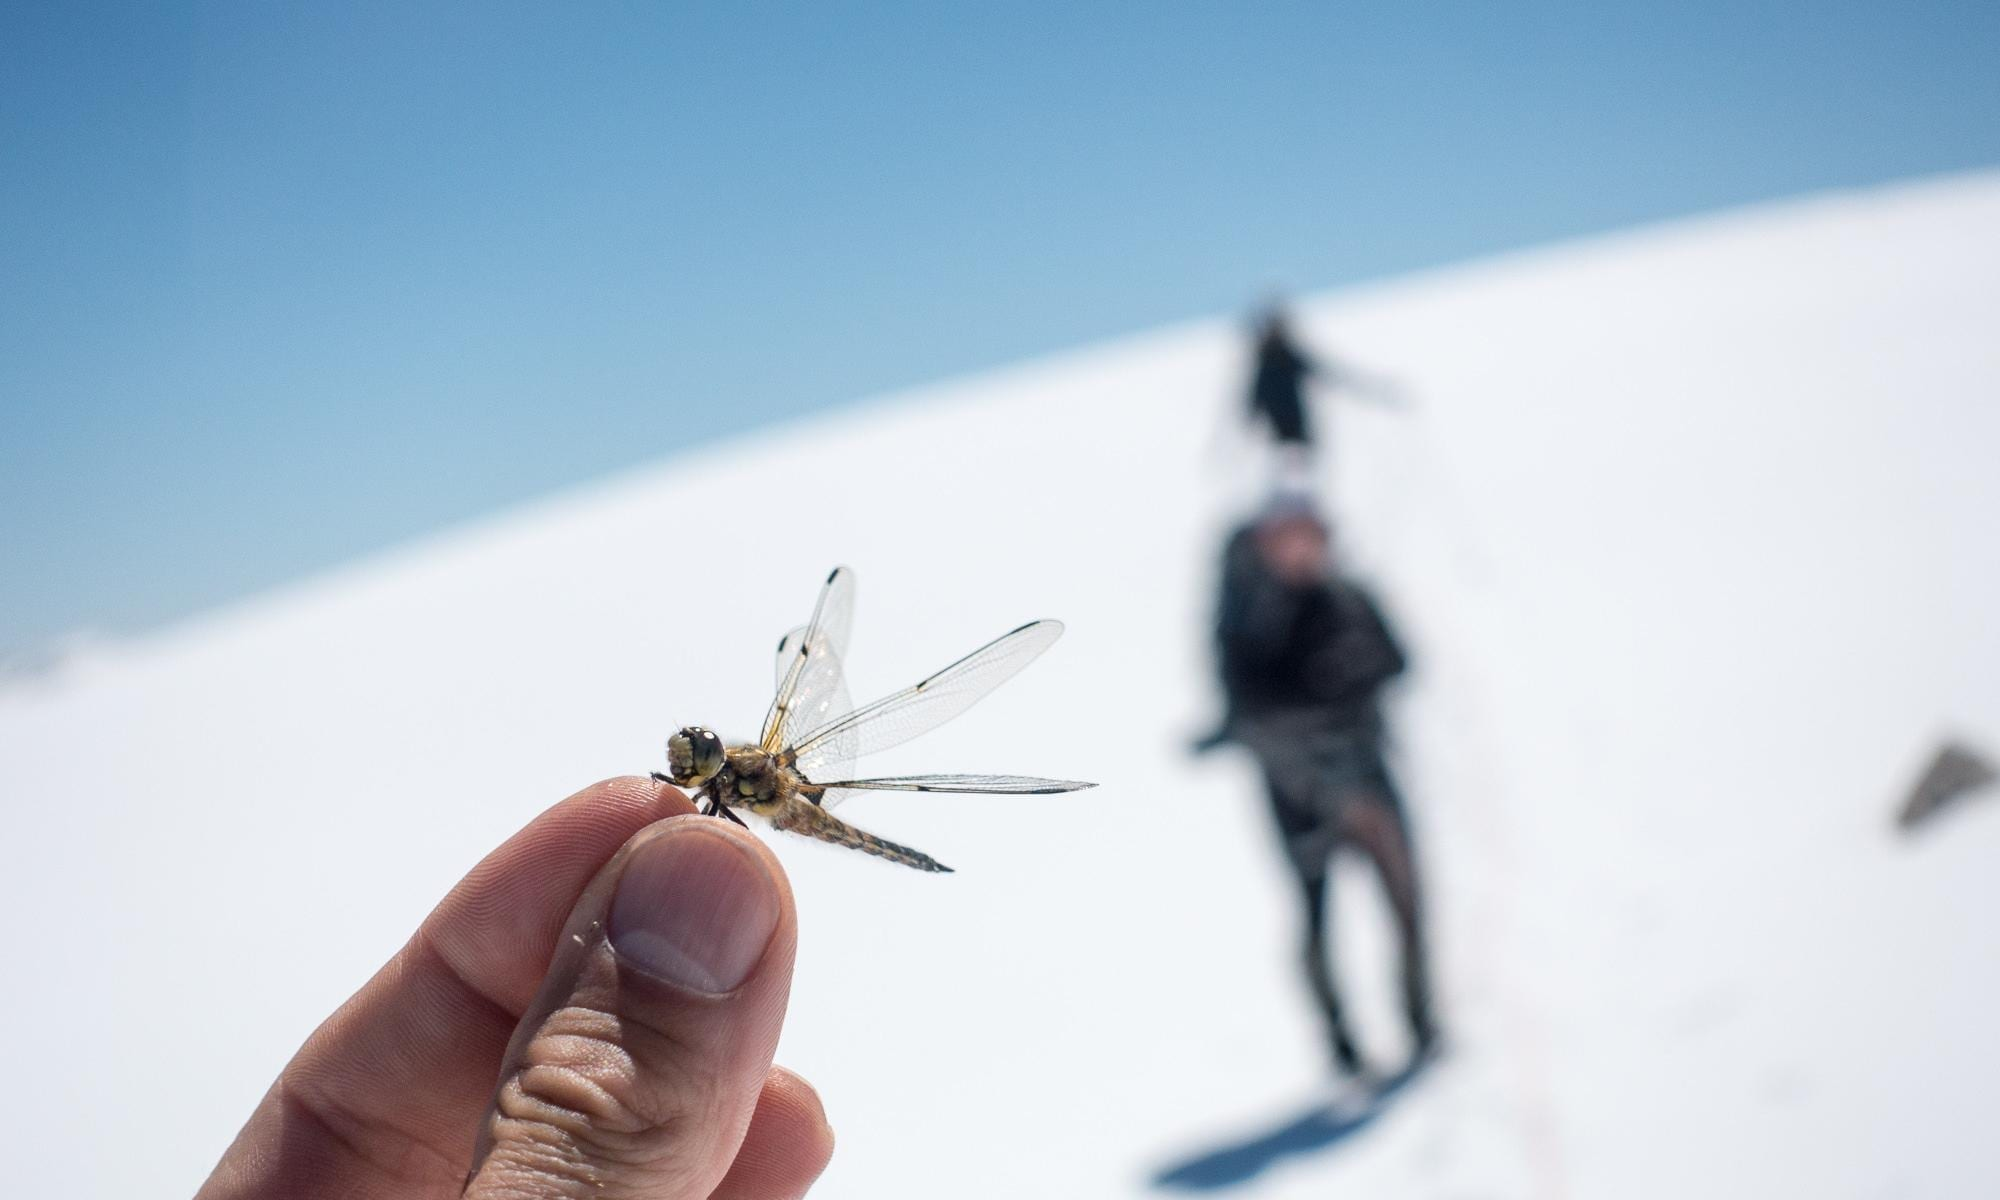 Dragonfly on the Wapta